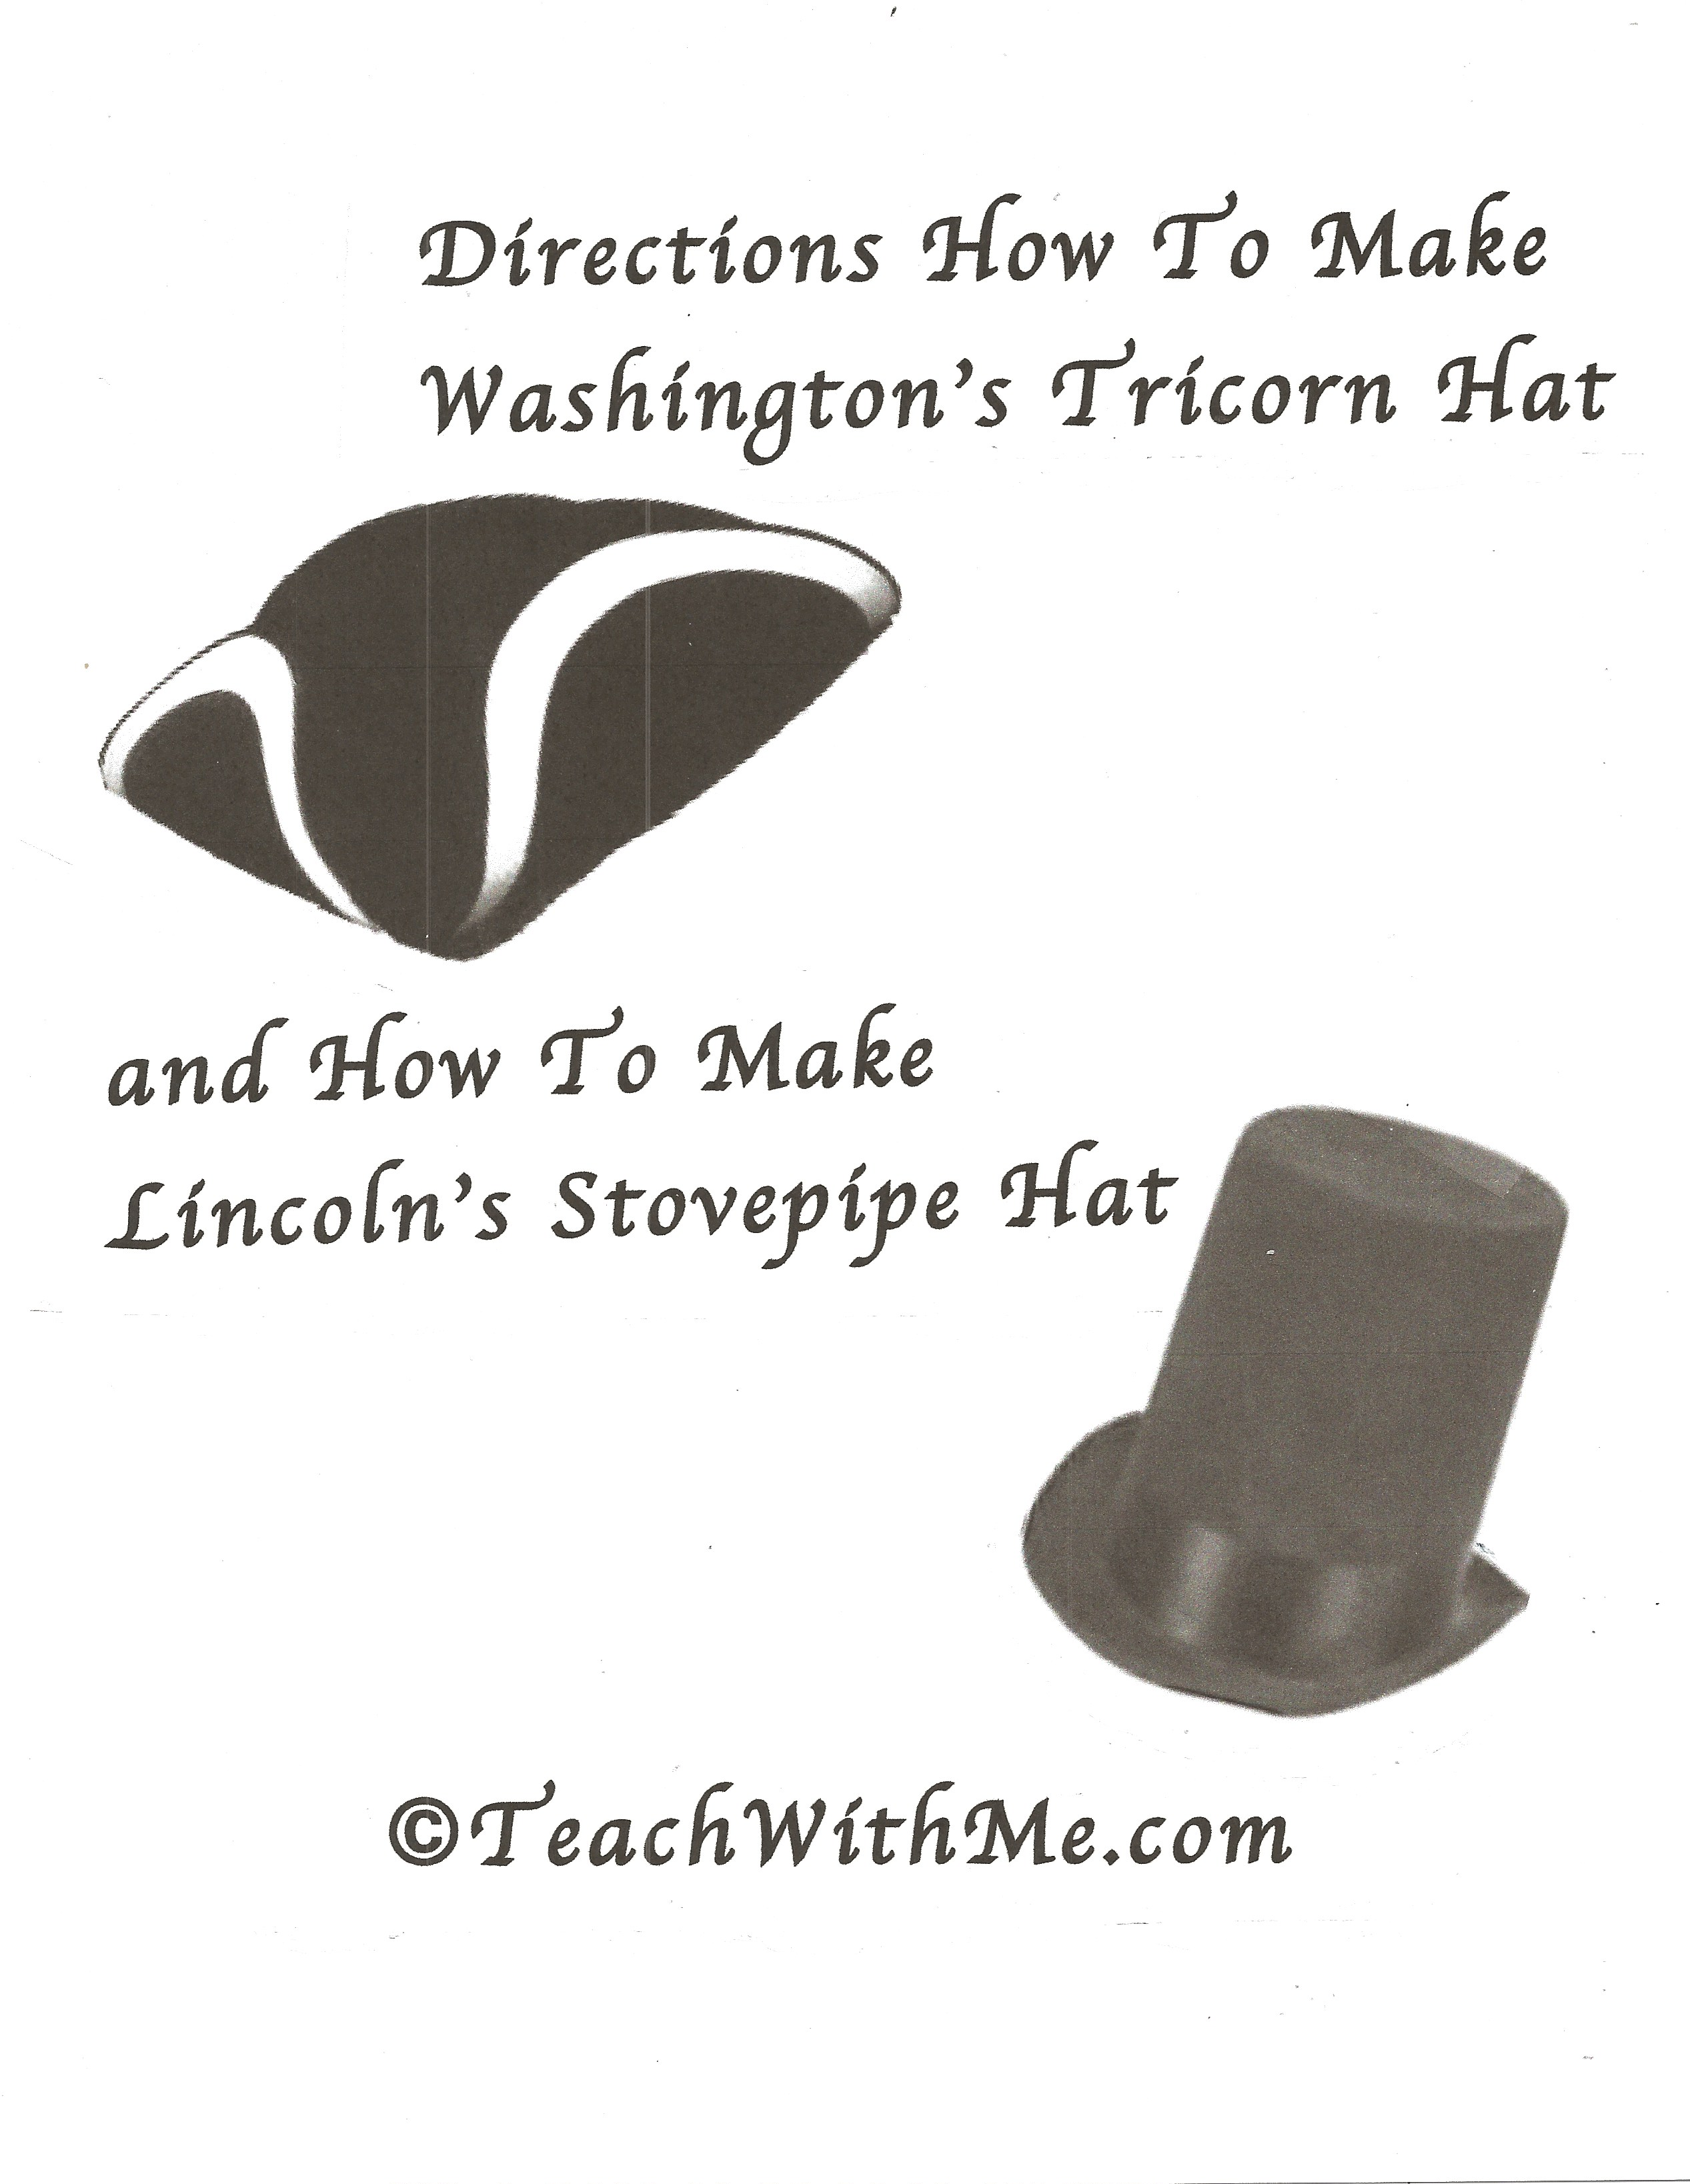 washingtons tricorn hat, lincolns stovepipe hat, top hat, paper plate hats, generals hat, pirate hat, jack sparrows hat, revolutionary war hat, george washingtons hat, seuss hat, dr. seuss hat, how to make a seuss hat, how to make a dr. seuss hat, how to make a top hat, how to make a tricorn hat,